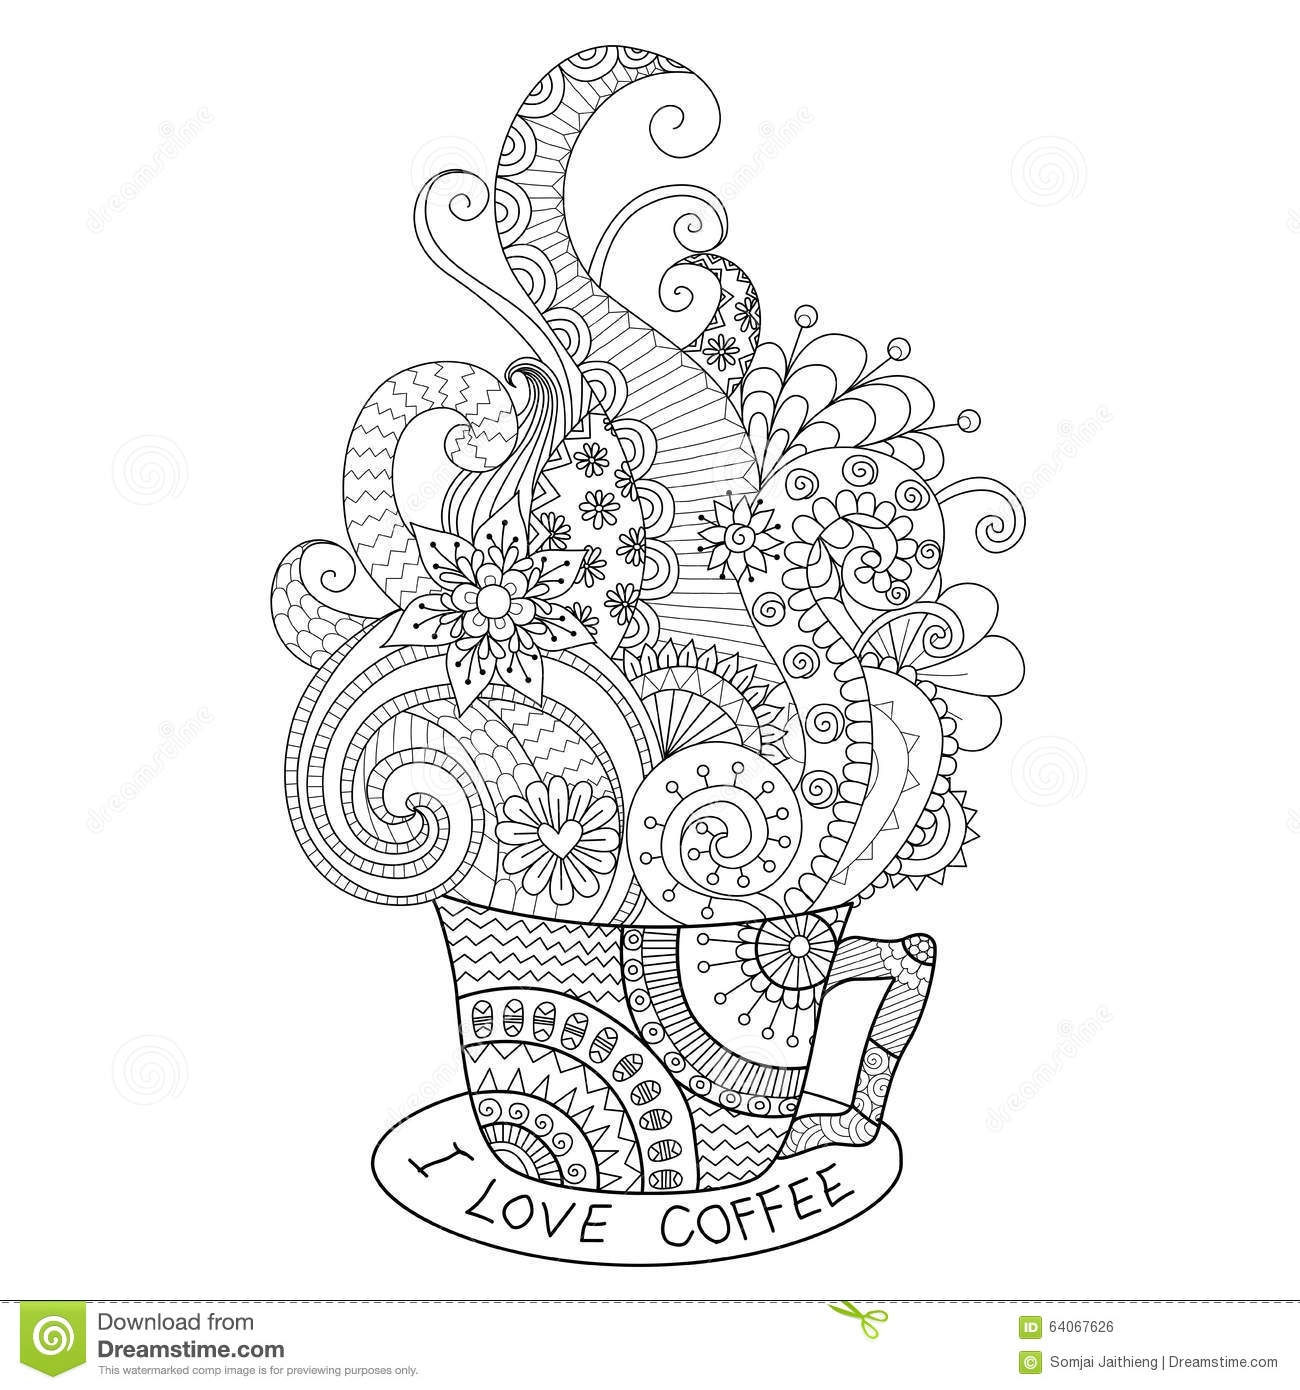 24 Starbucks Coloring Page Printable Free Coloring Pages Part 3